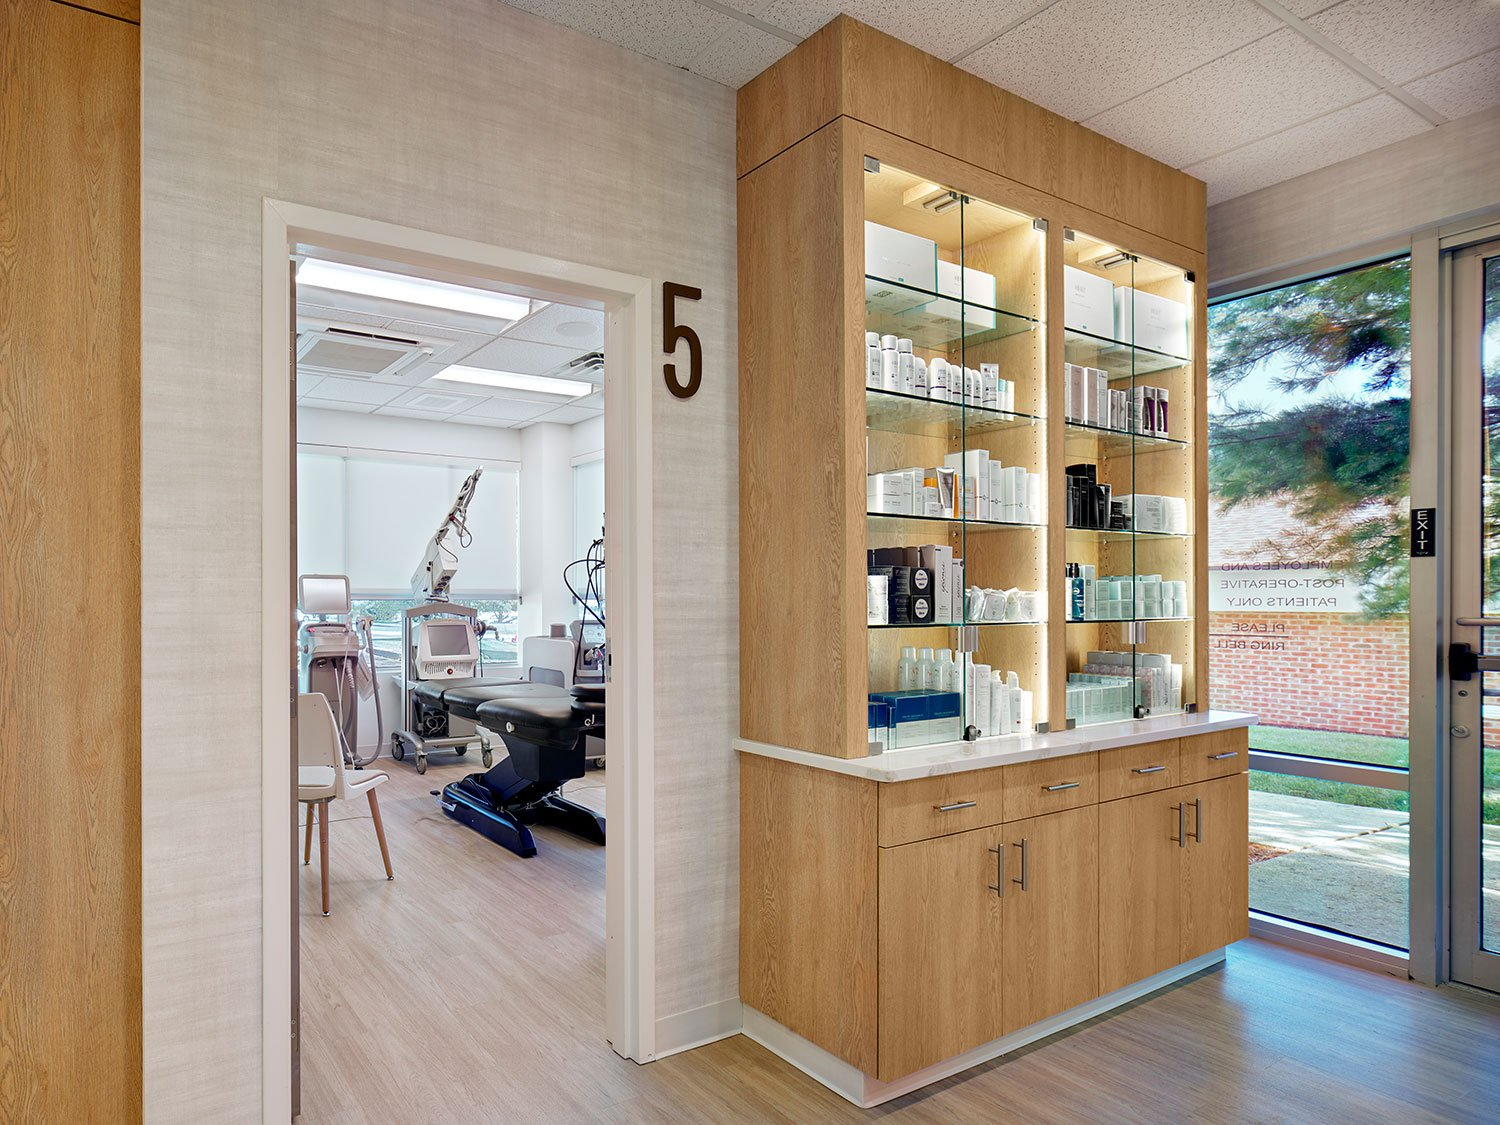 Berks Plastic Surgery Office